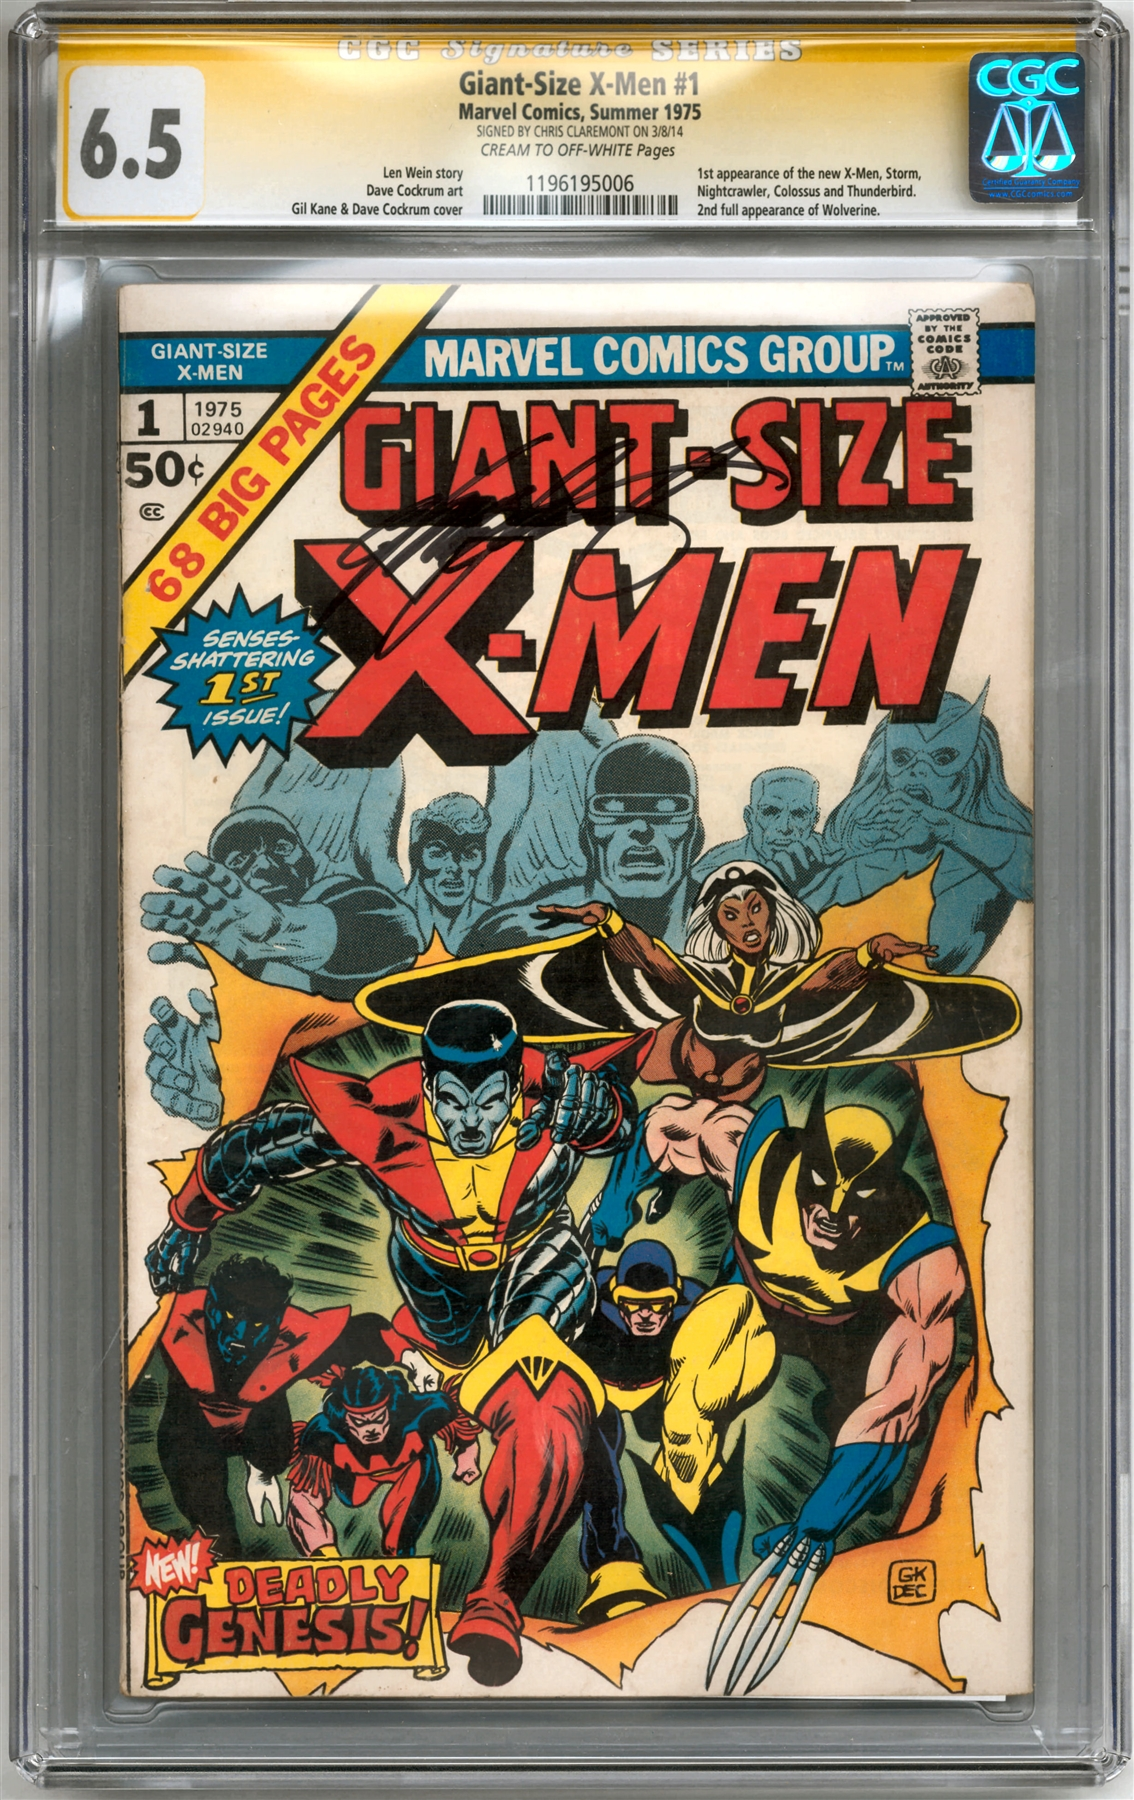 Giant Size X Men 1 CGC 65 C OW 1196195006 Signature Series Signed By Chris Claremont